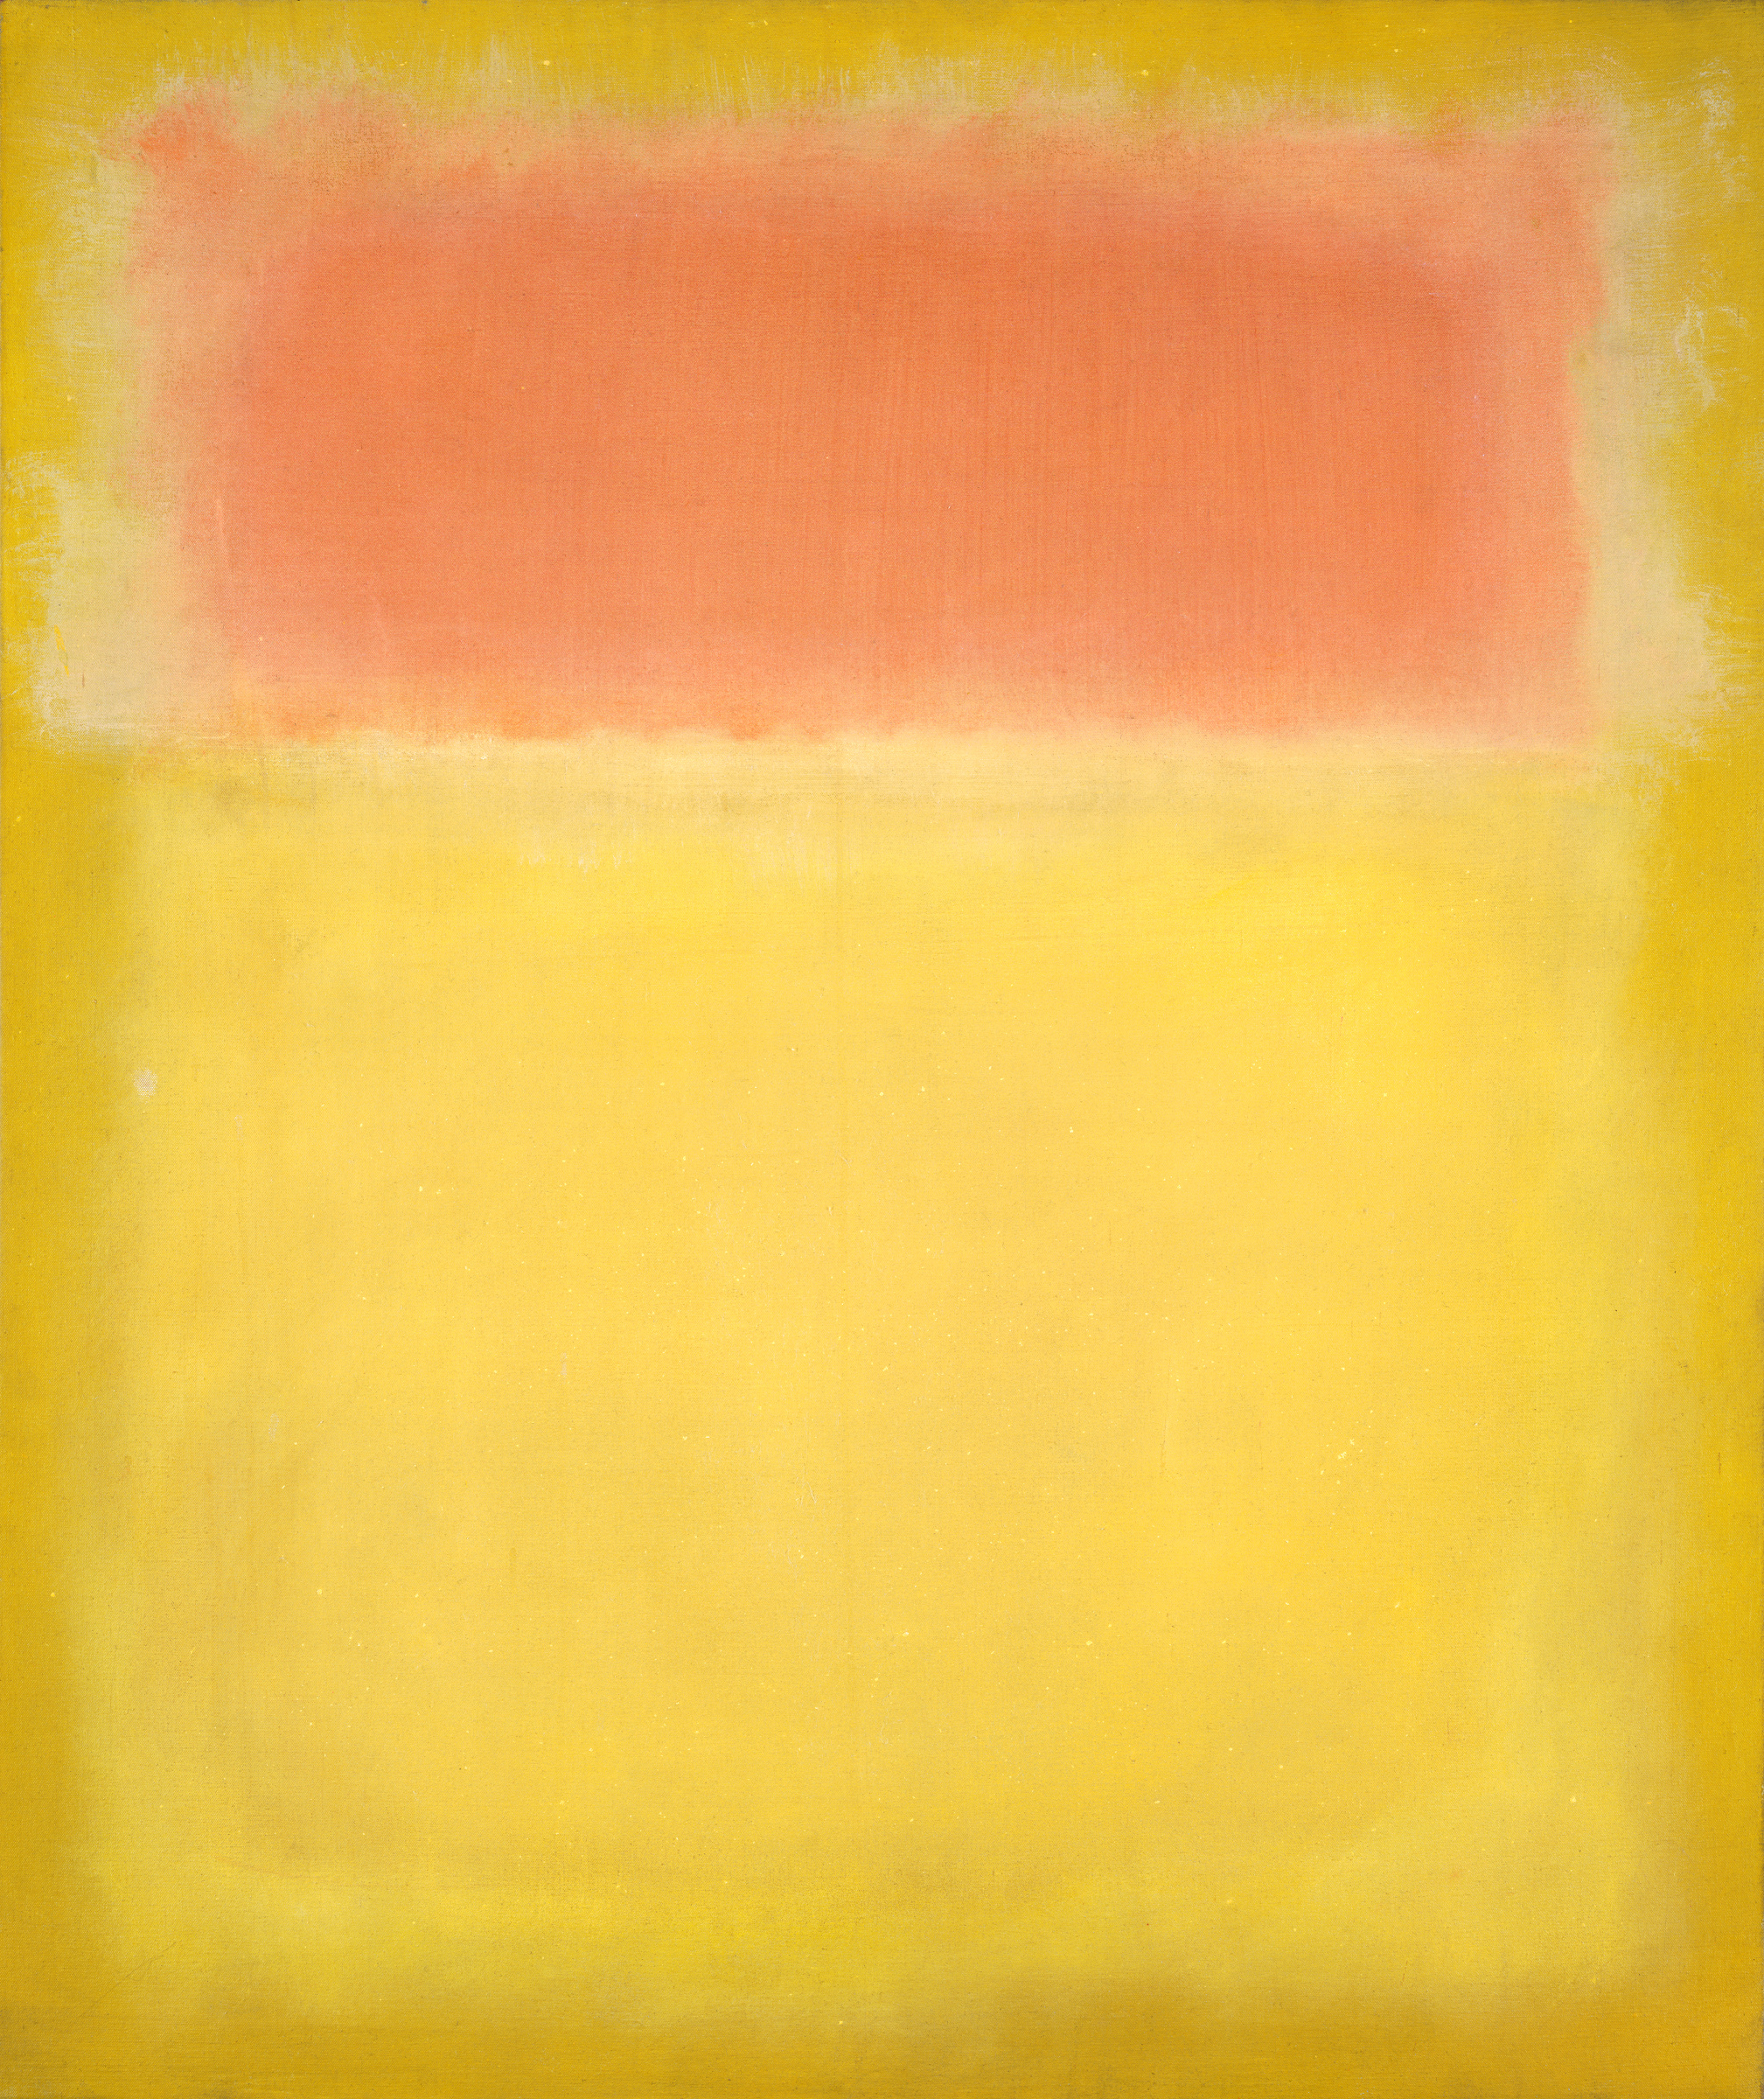 , Rare and Major Mark Rothko Retrospective at Museum of Fine Arts Houston, The Only U.S. Venue For This Exhibition